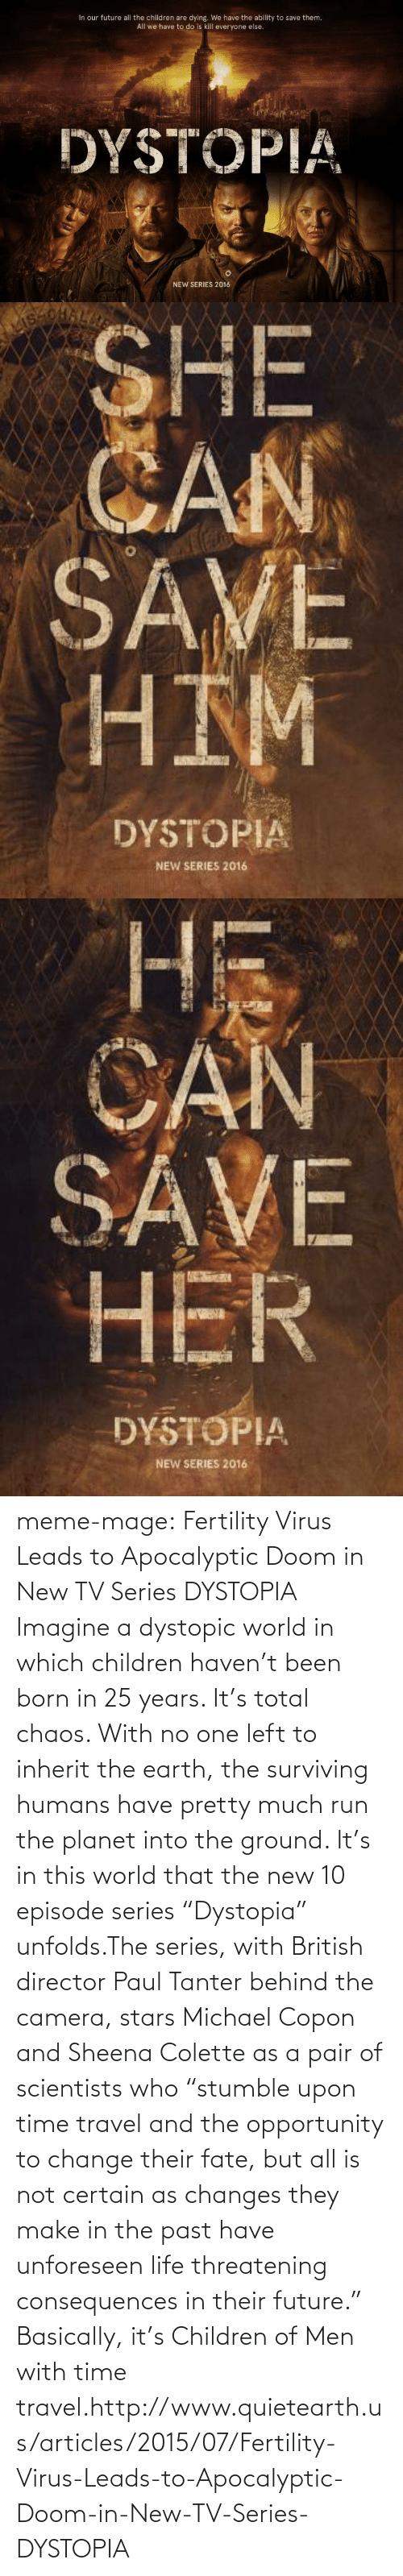 """Children, Future, and Life: In our future all the children are dying. We have the ability to save them.  All we have to do is kill everyone else.  DYSTOPIA  NEW SERIES 2016   SHE  CAN  SAVE  HIM  DYSTOPIA  NEW SERIES 2016   Hi  CAN  SAVE  HER  DYSTOPIA  NEW SERIES 2016 meme-mage:  Fertility Virus Leads to Apocalyptic Doom in New TV Series DYSTOPIA    Imagine a dystopic world in which children haven't been born in 25 years. It's total chaos. With no one left to inherit the earth, the surviving humans have pretty much run the planet into the ground. It's in this world that the new 10 episode series """"Dystopia"""" unfolds.The series, with British director Paul Tanter behind the camera, stars Michael Copon and Sheena Colette as a pair of scientists who """"stumble upon time travel and the opportunity to change their fate, but all is not certain as changes they make in the past have unforeseen life threatening consequences in their future."""" Basically, it's Children of Men with time travel.http://www.quietearth.us/articles/2015/07/Fertility-Virus-Leads-to-Apocalyptic-Doom-in-New-TV-Series-DYSTOPIA"""